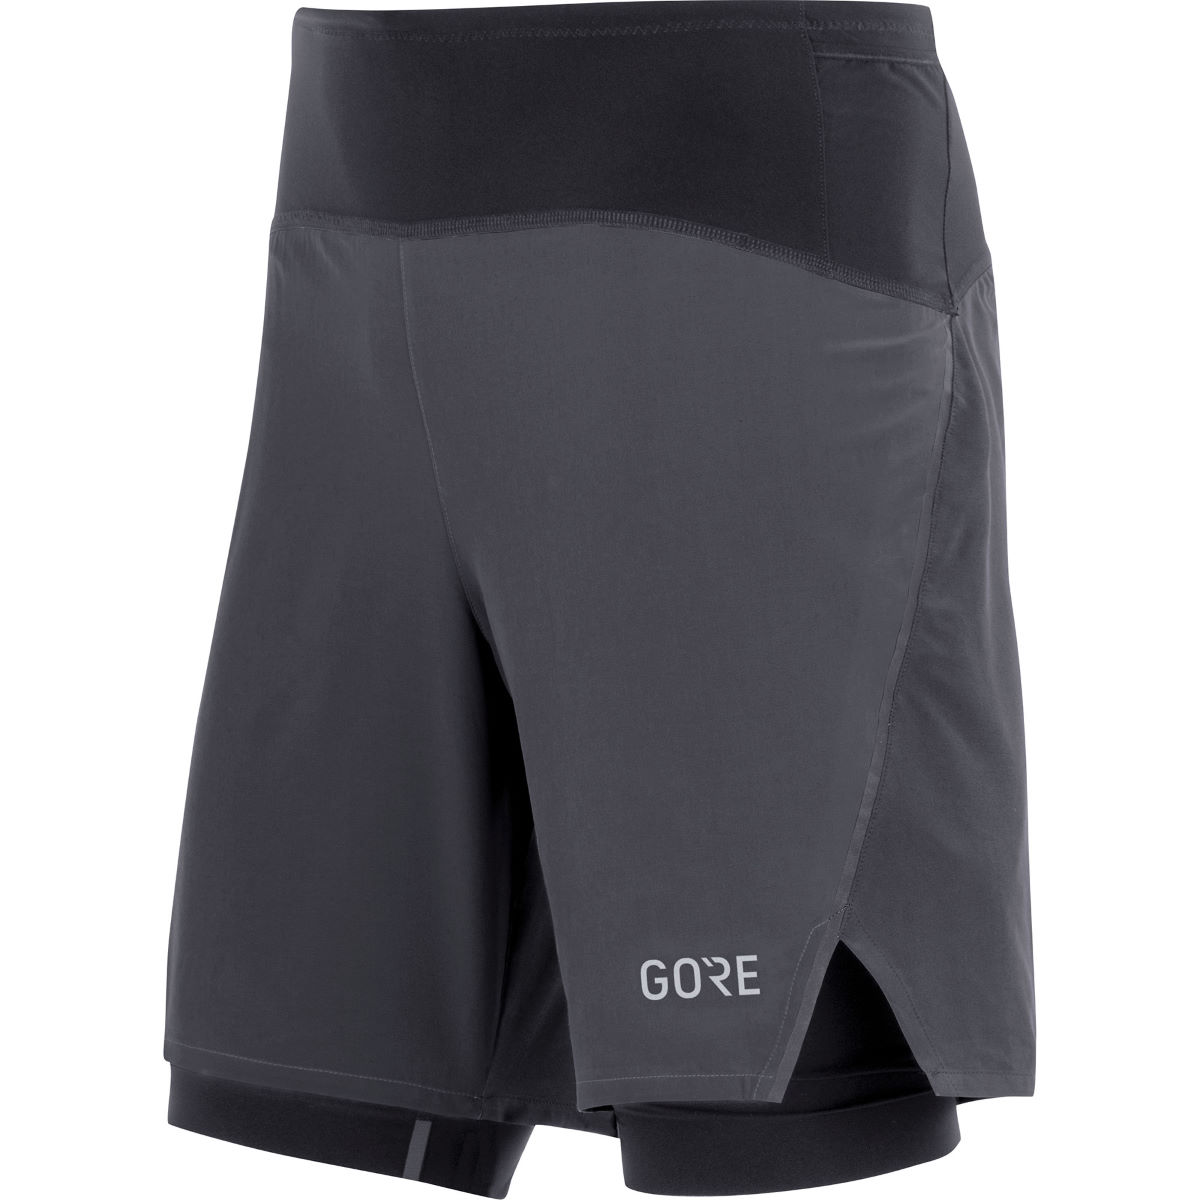 Gore Wear R7 2in1 Shorts - Extra Extra Large Black  Shorts